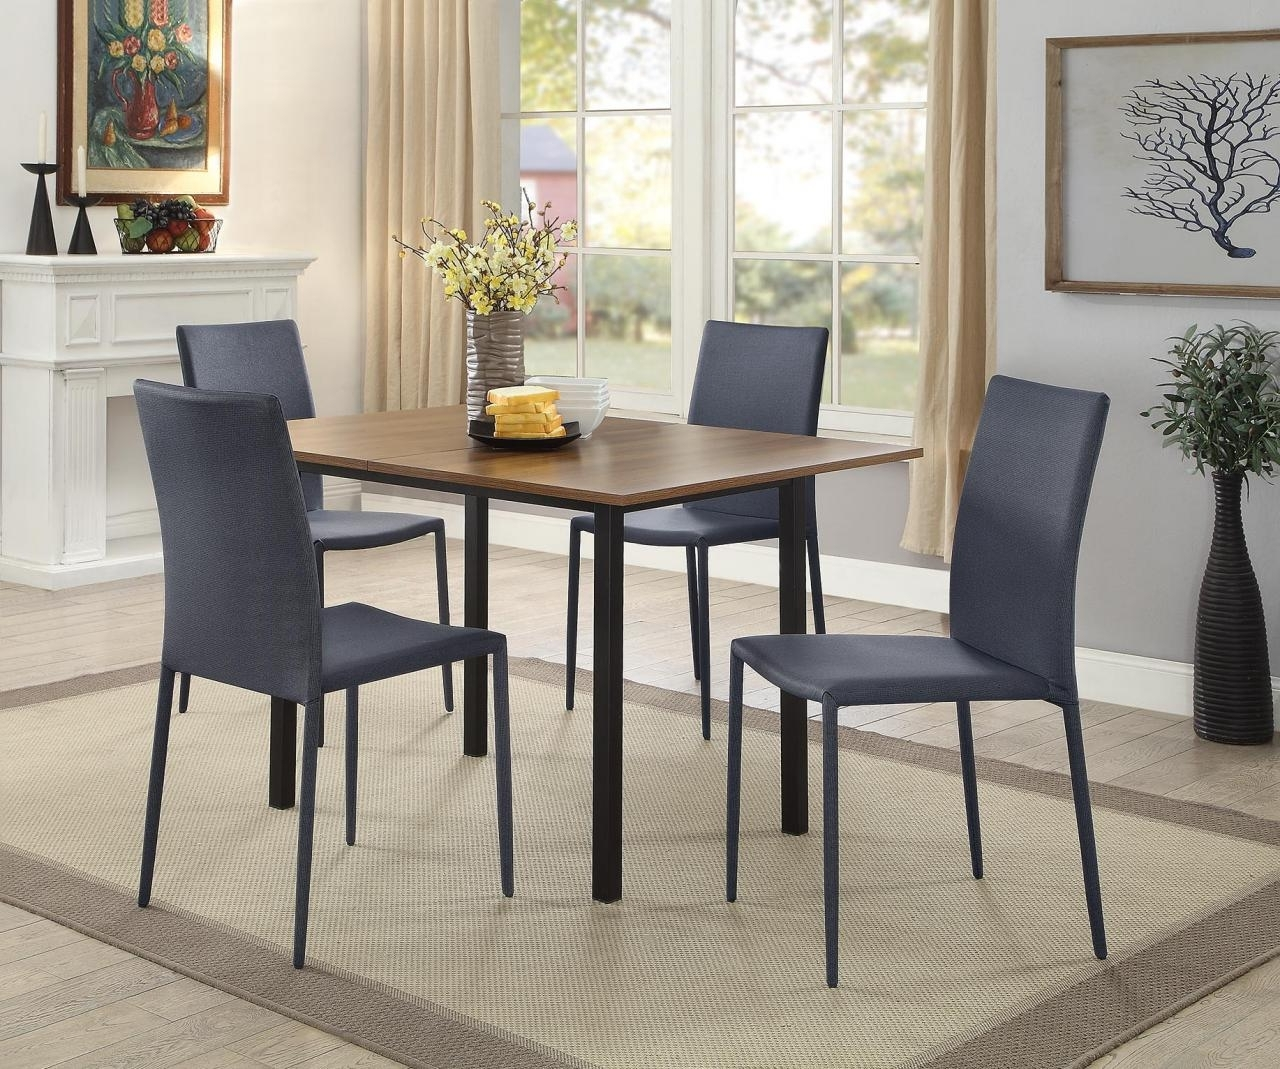 Market 7 Piece Dining Sets With Side Chairs Throughout Favorite Table And Chair Sets Kitchen Appliances, Furniture, And Mattress In (Gallery 22 of 25)